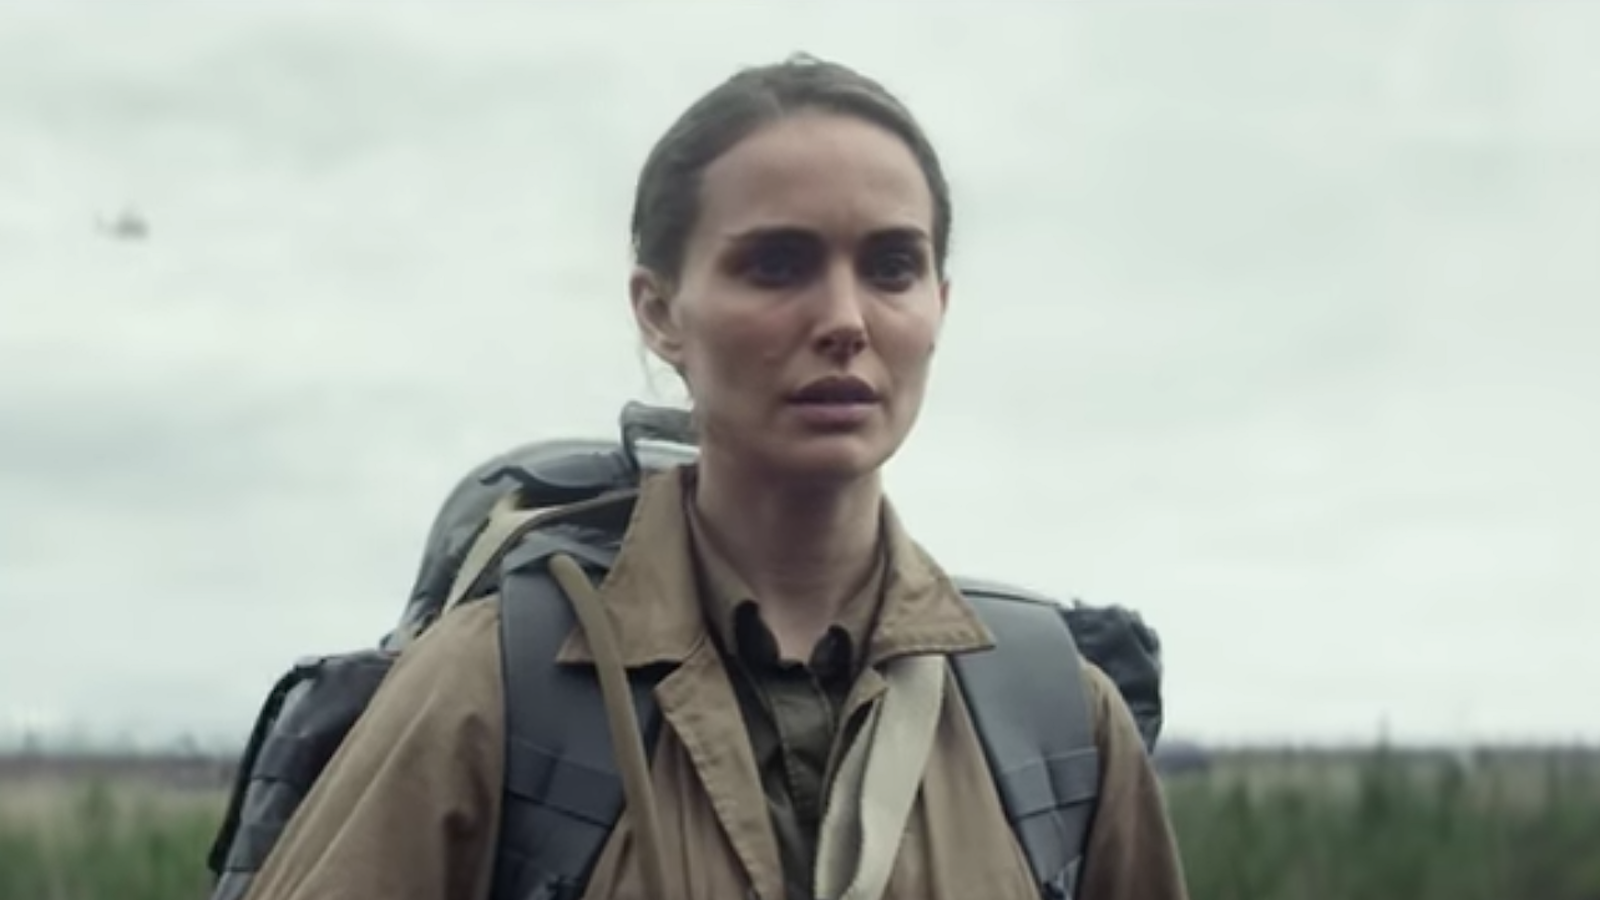 cr3hy5qdjn3j4oebv4za - Annihilation Is Being Criticized for Erasing the Main Character's Race